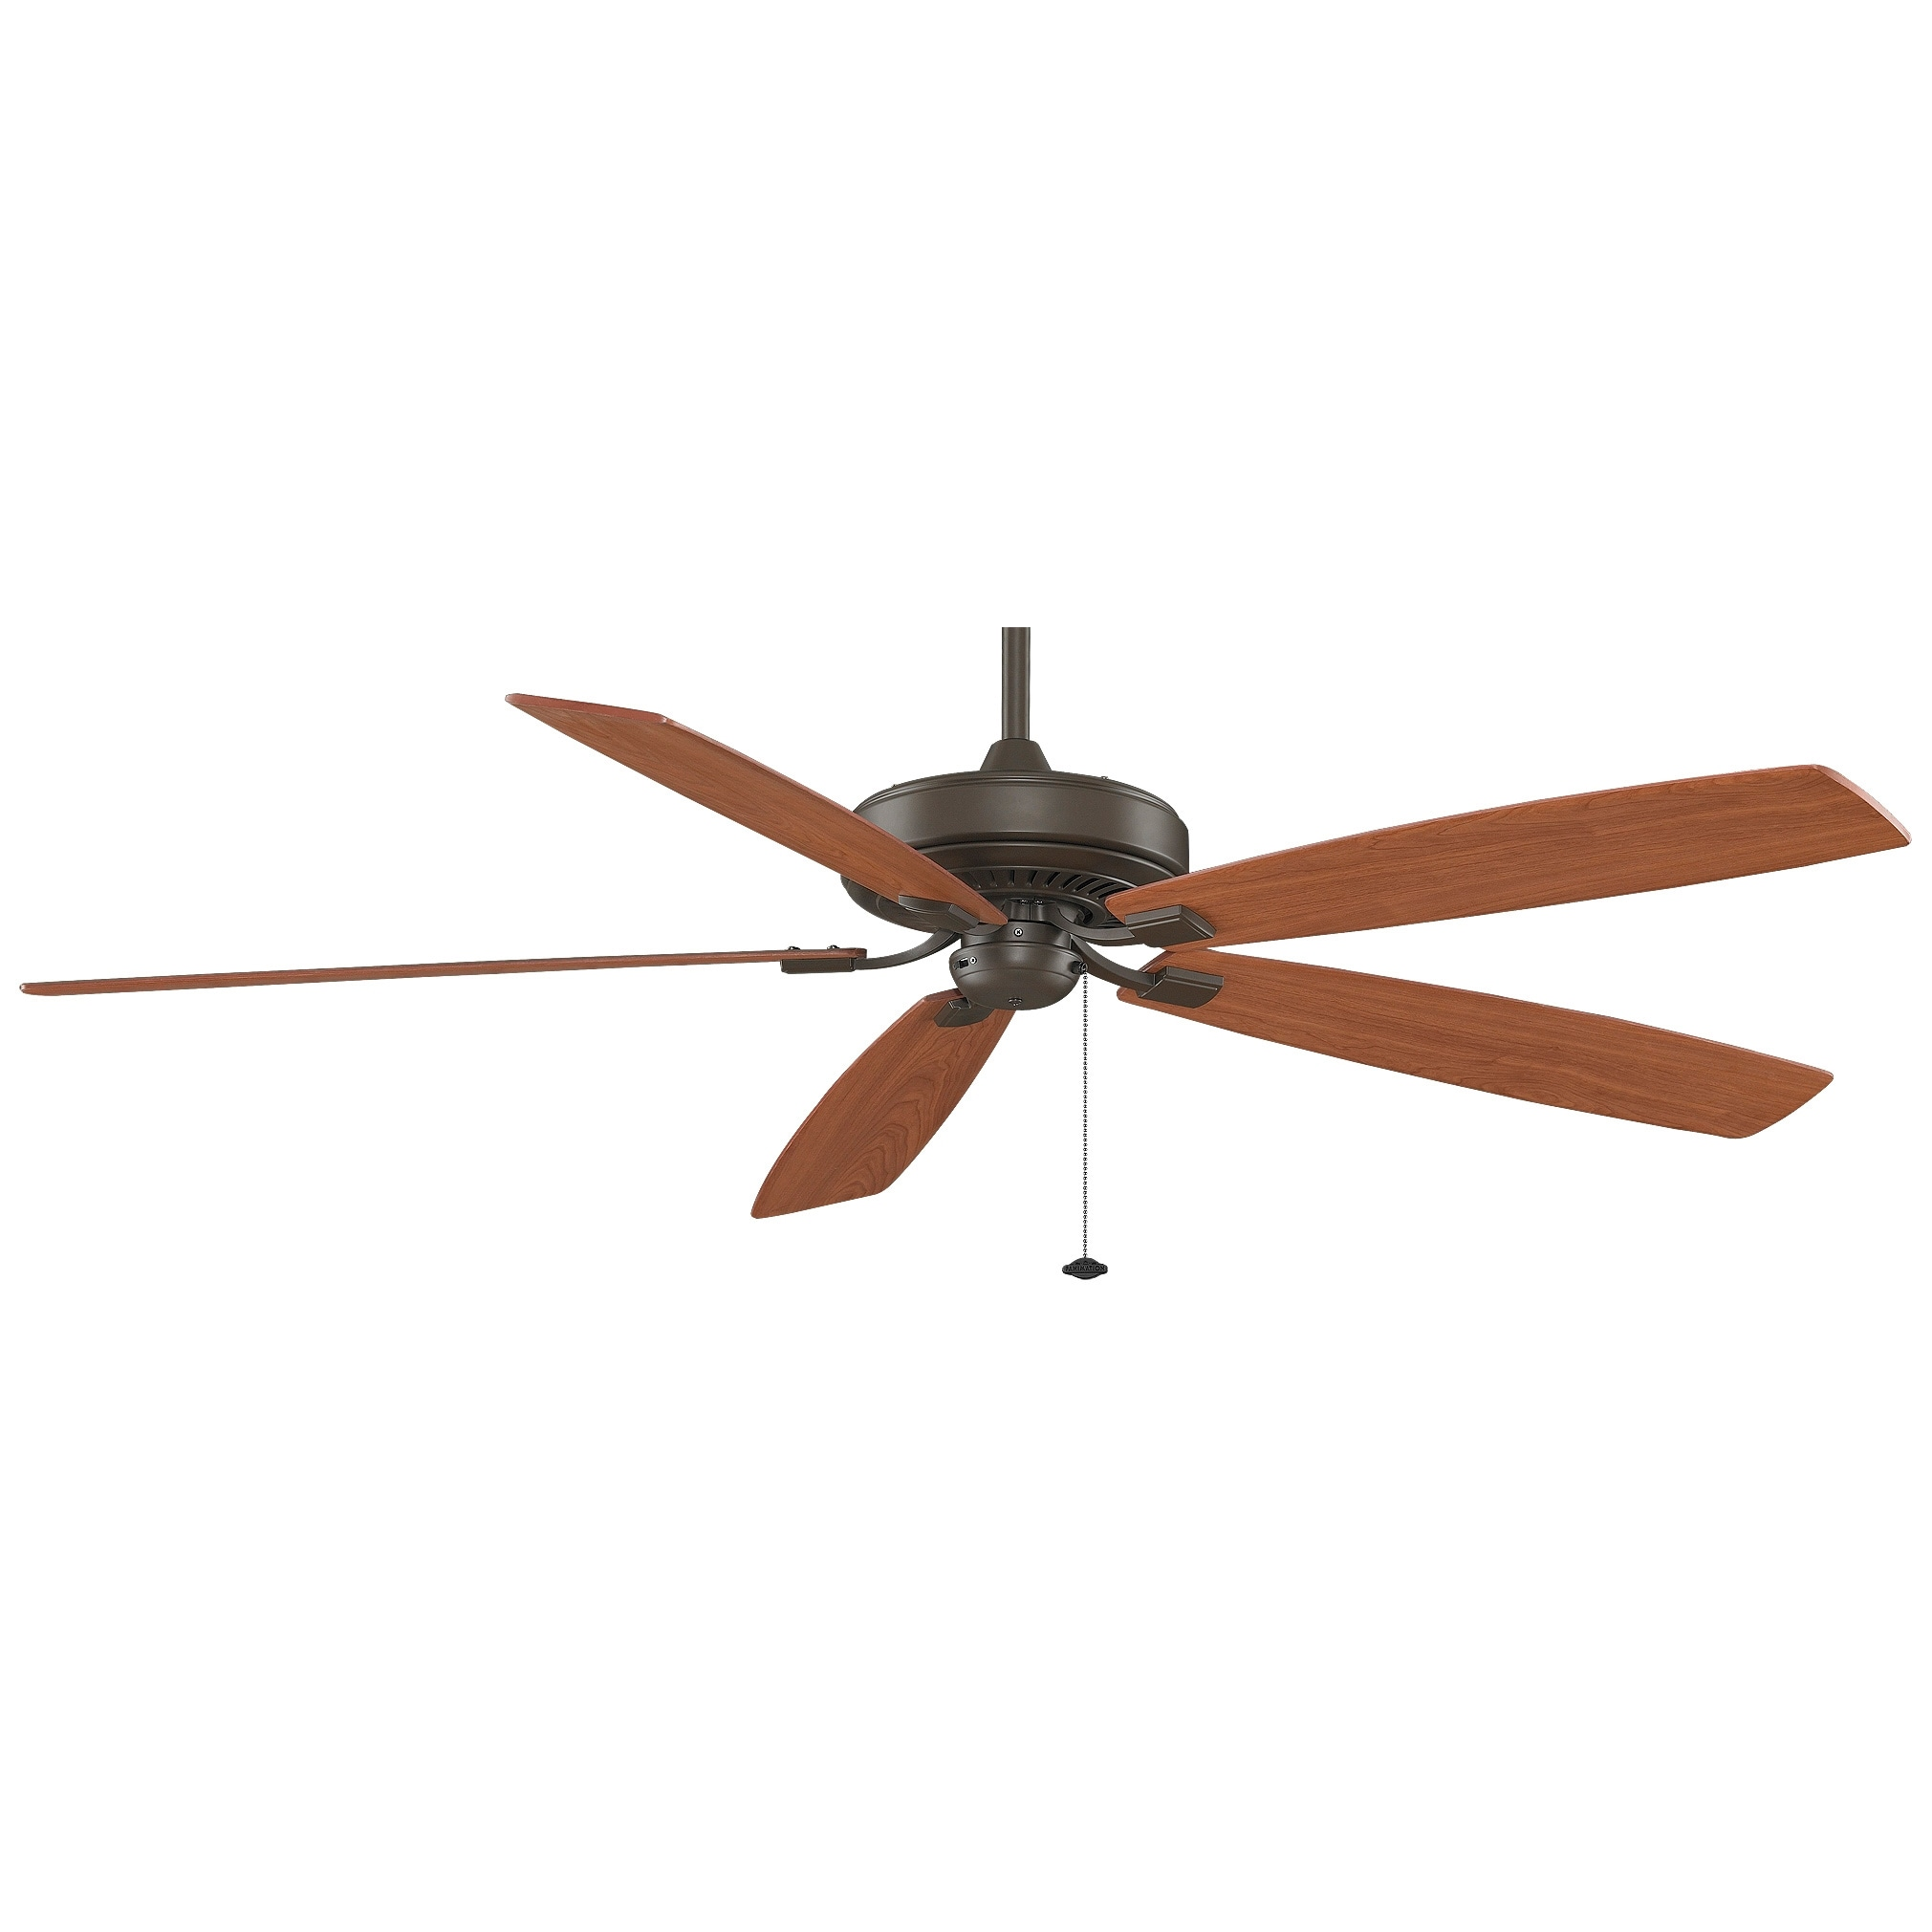 light refurbished marble swirled fan with great ceiling certified room bronze glass kit hunter in blade product new